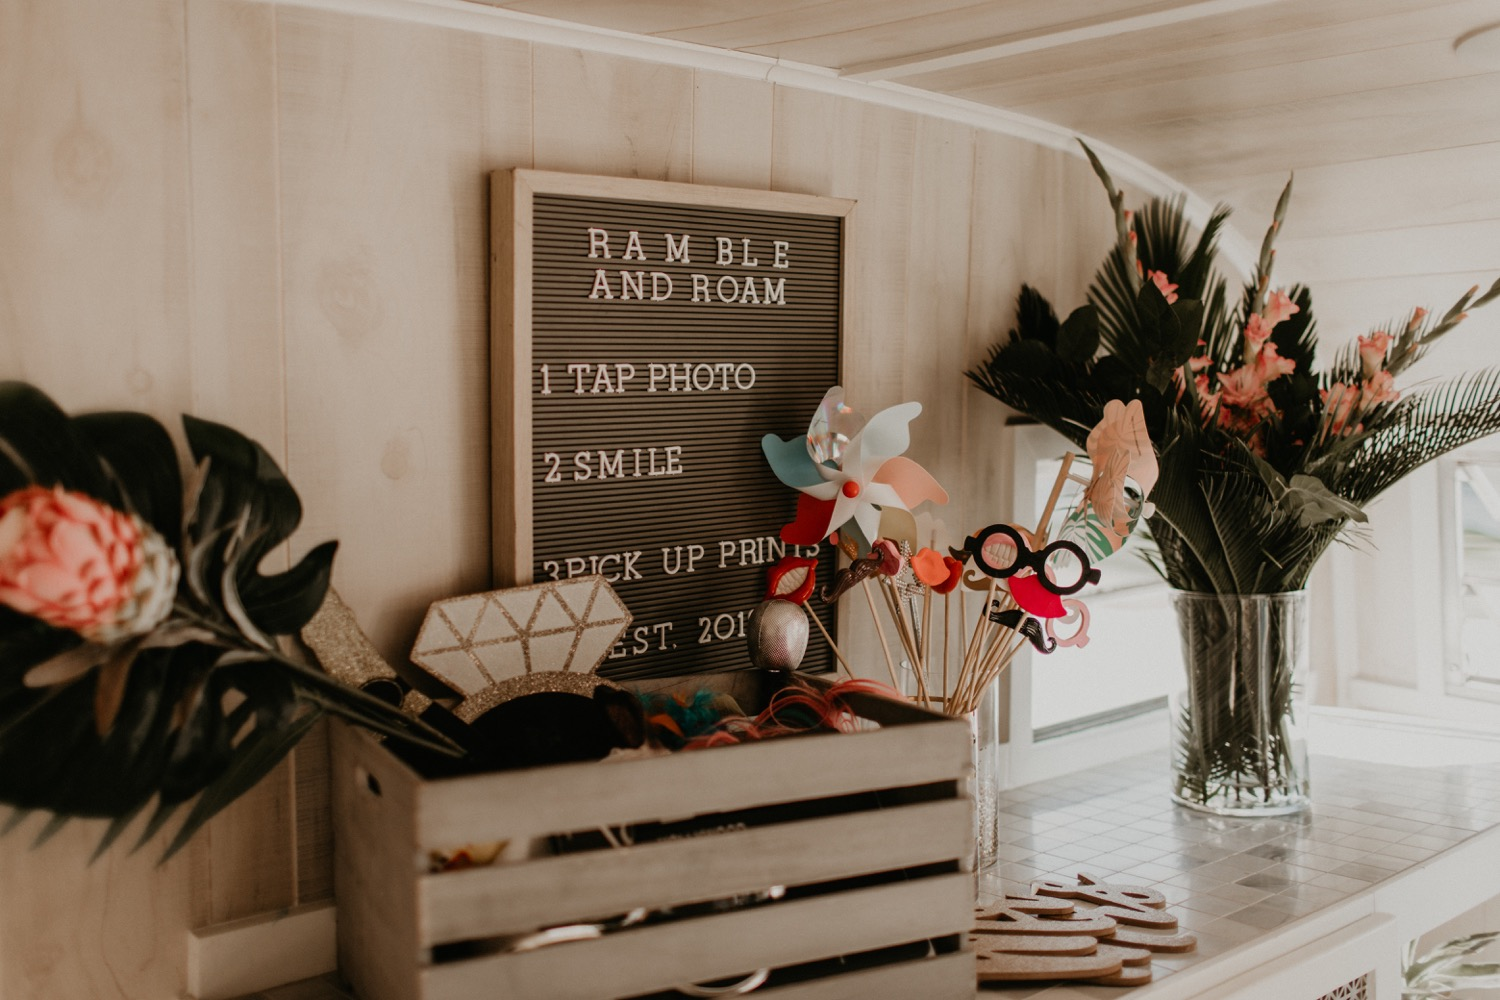 Photo Booth inspiration for your wedding canvas prints